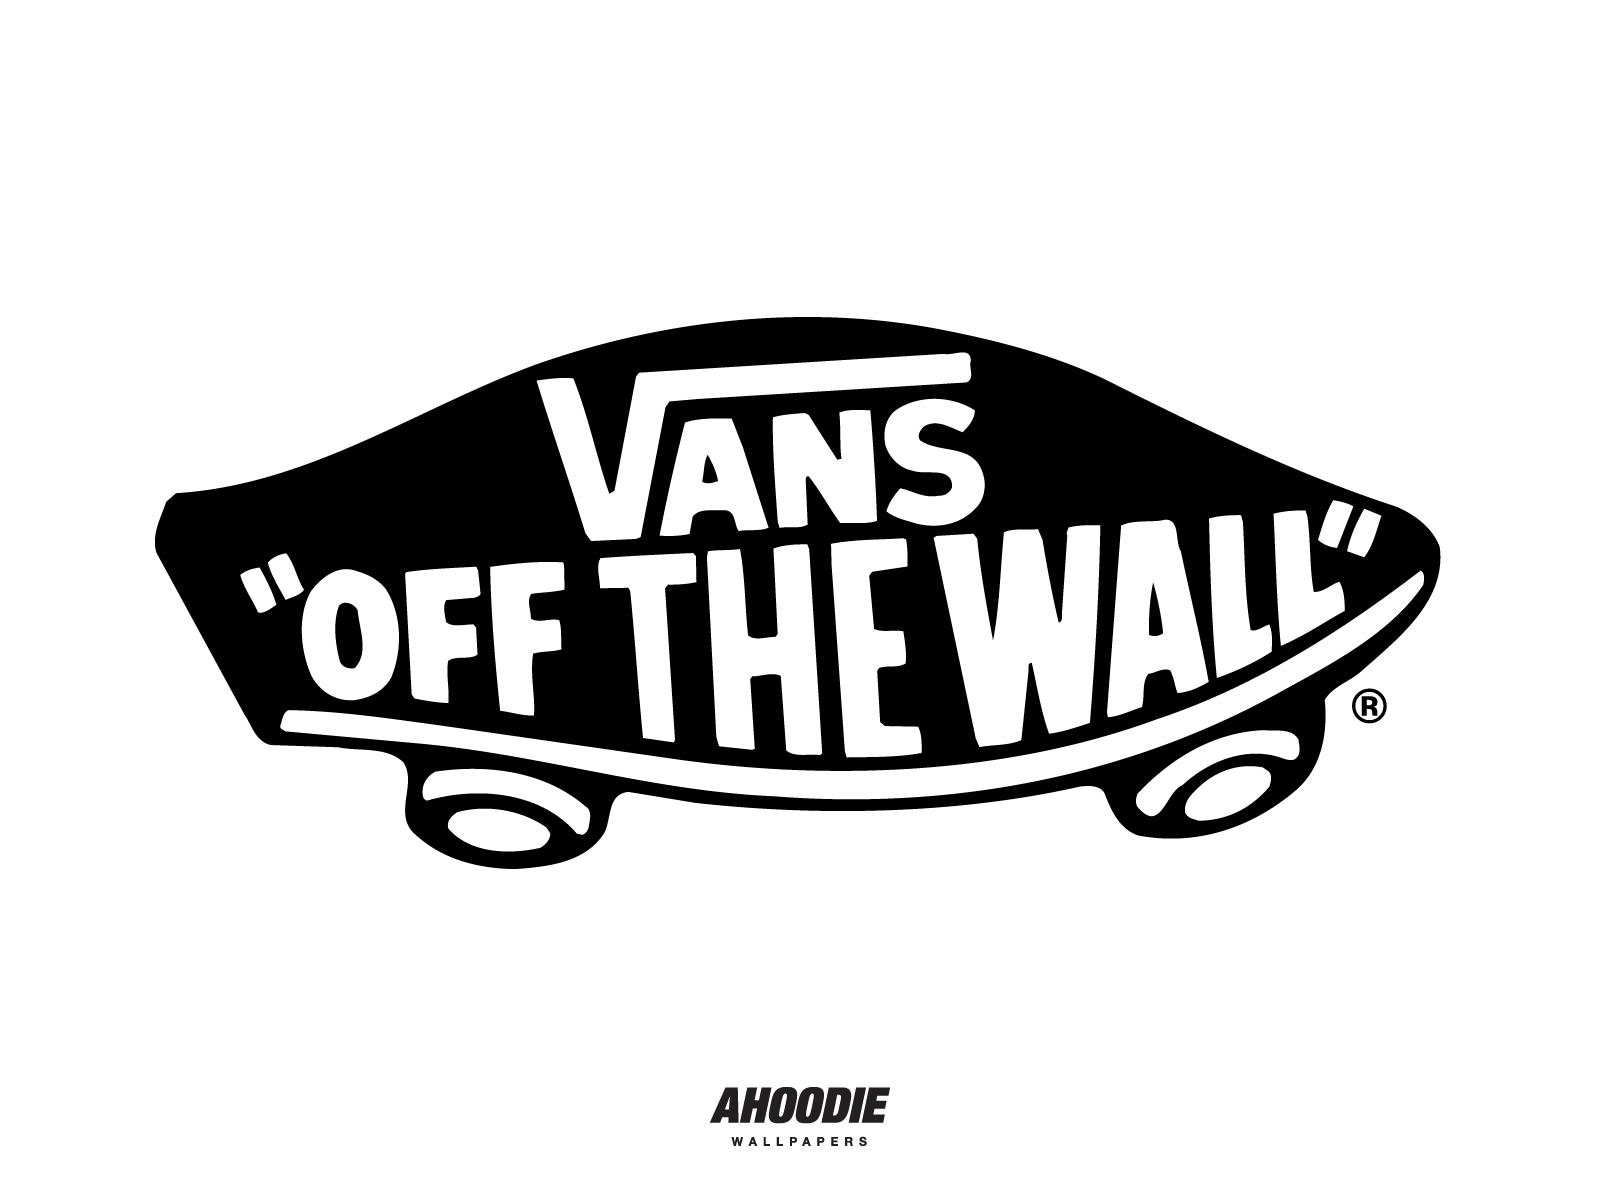 vans-desktop-wallpaper2[1].jpg